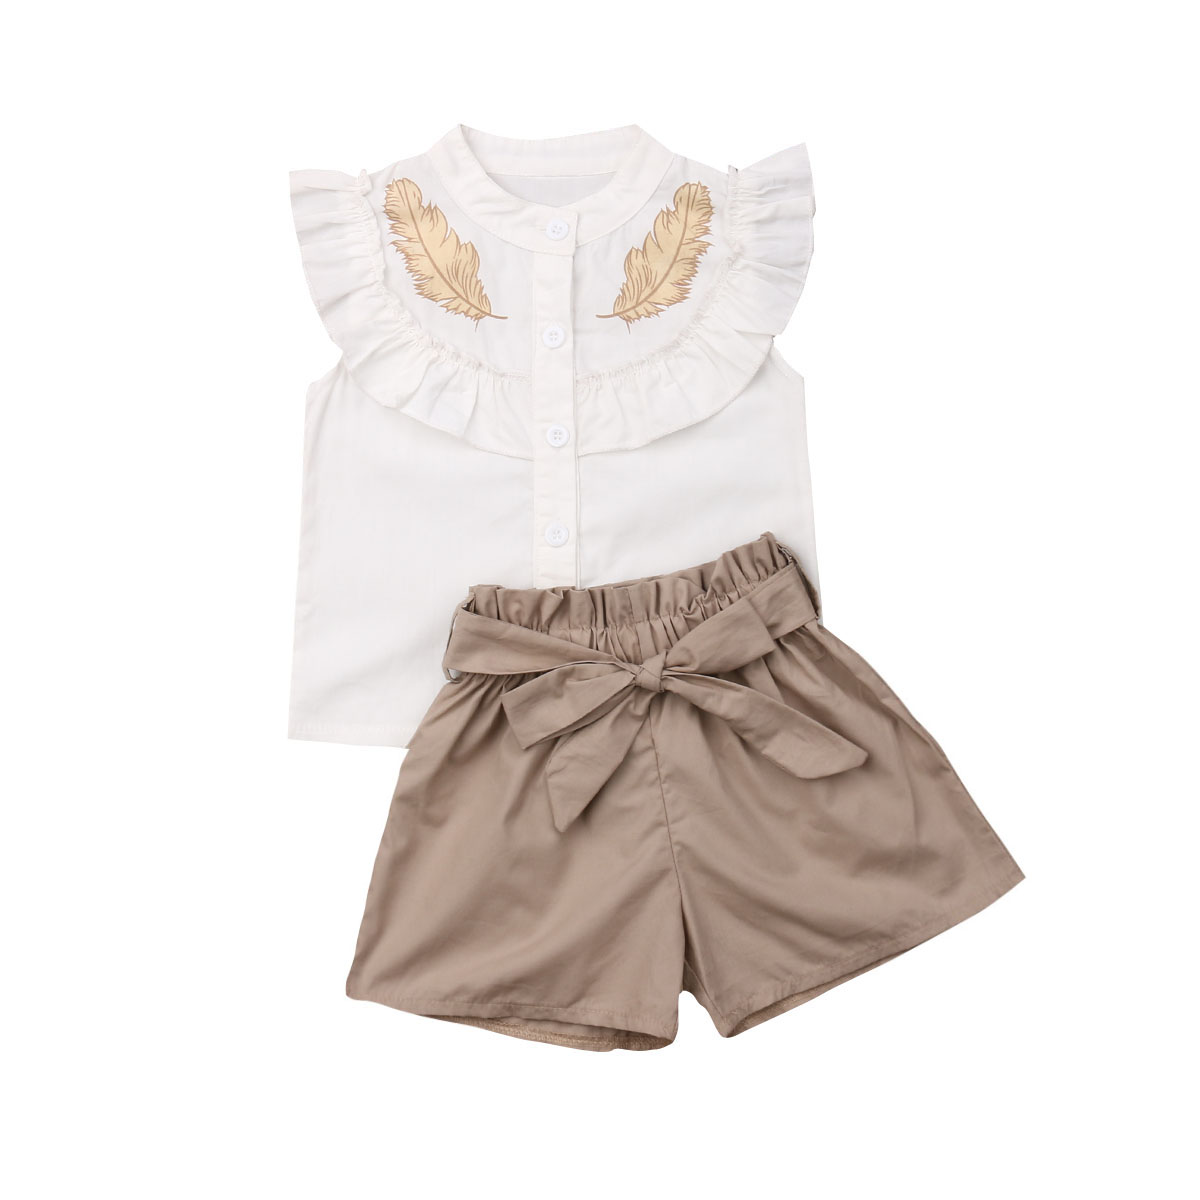 Toddler Girl Clothes Pudcoco Baby Girl Clothing Kid   Button Tops Shirt +Short Pants Summer Outfit Clothes Set